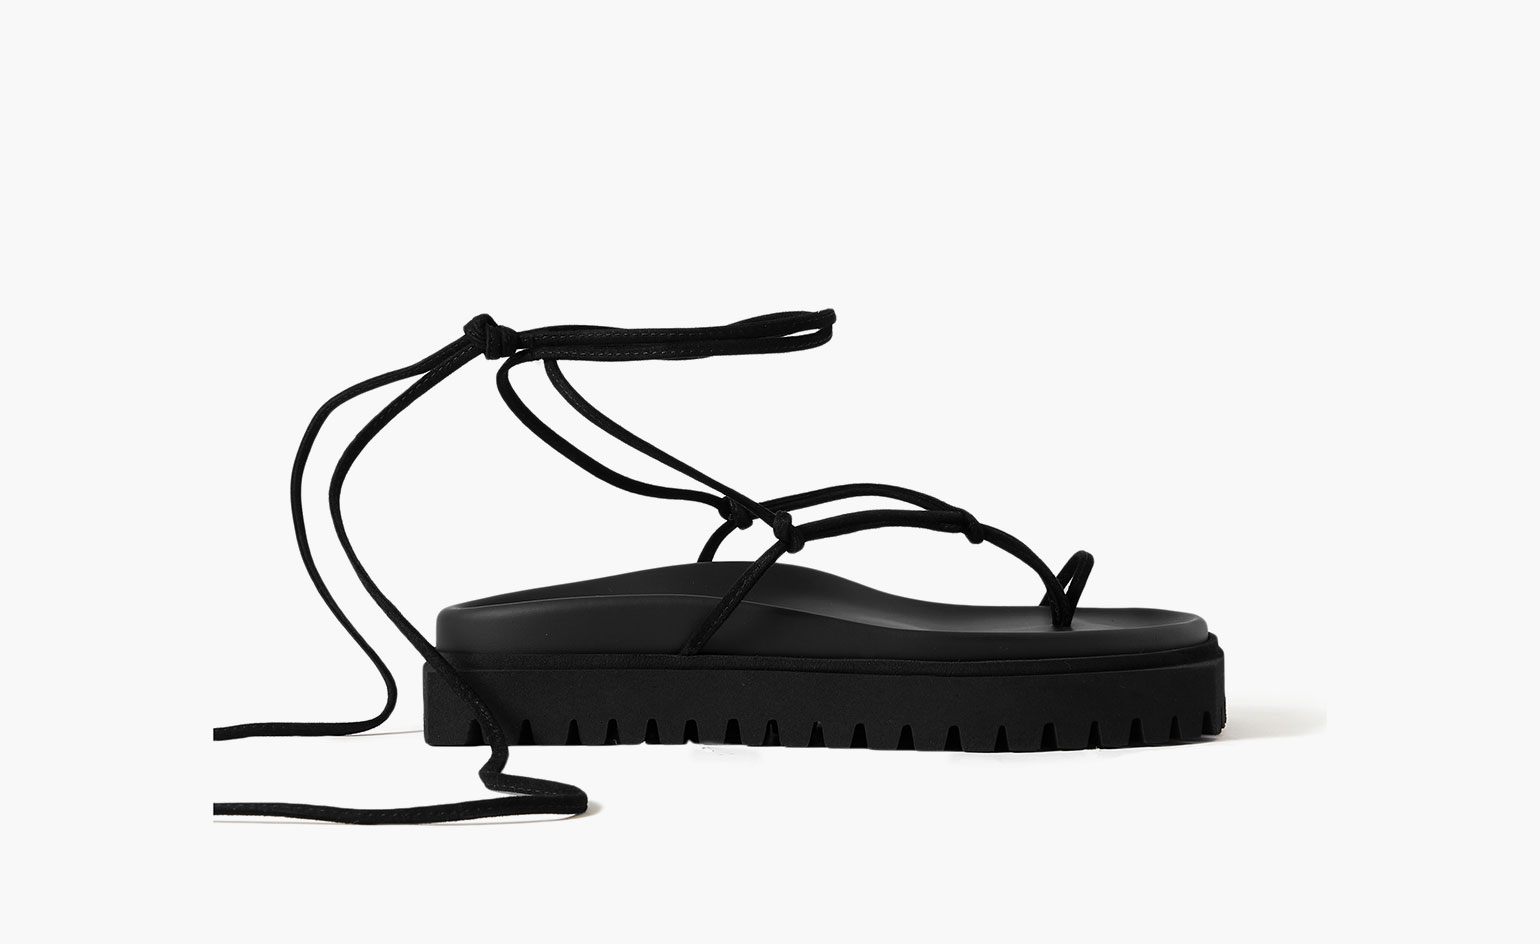 Summer sandals in black strappy style by The Attico